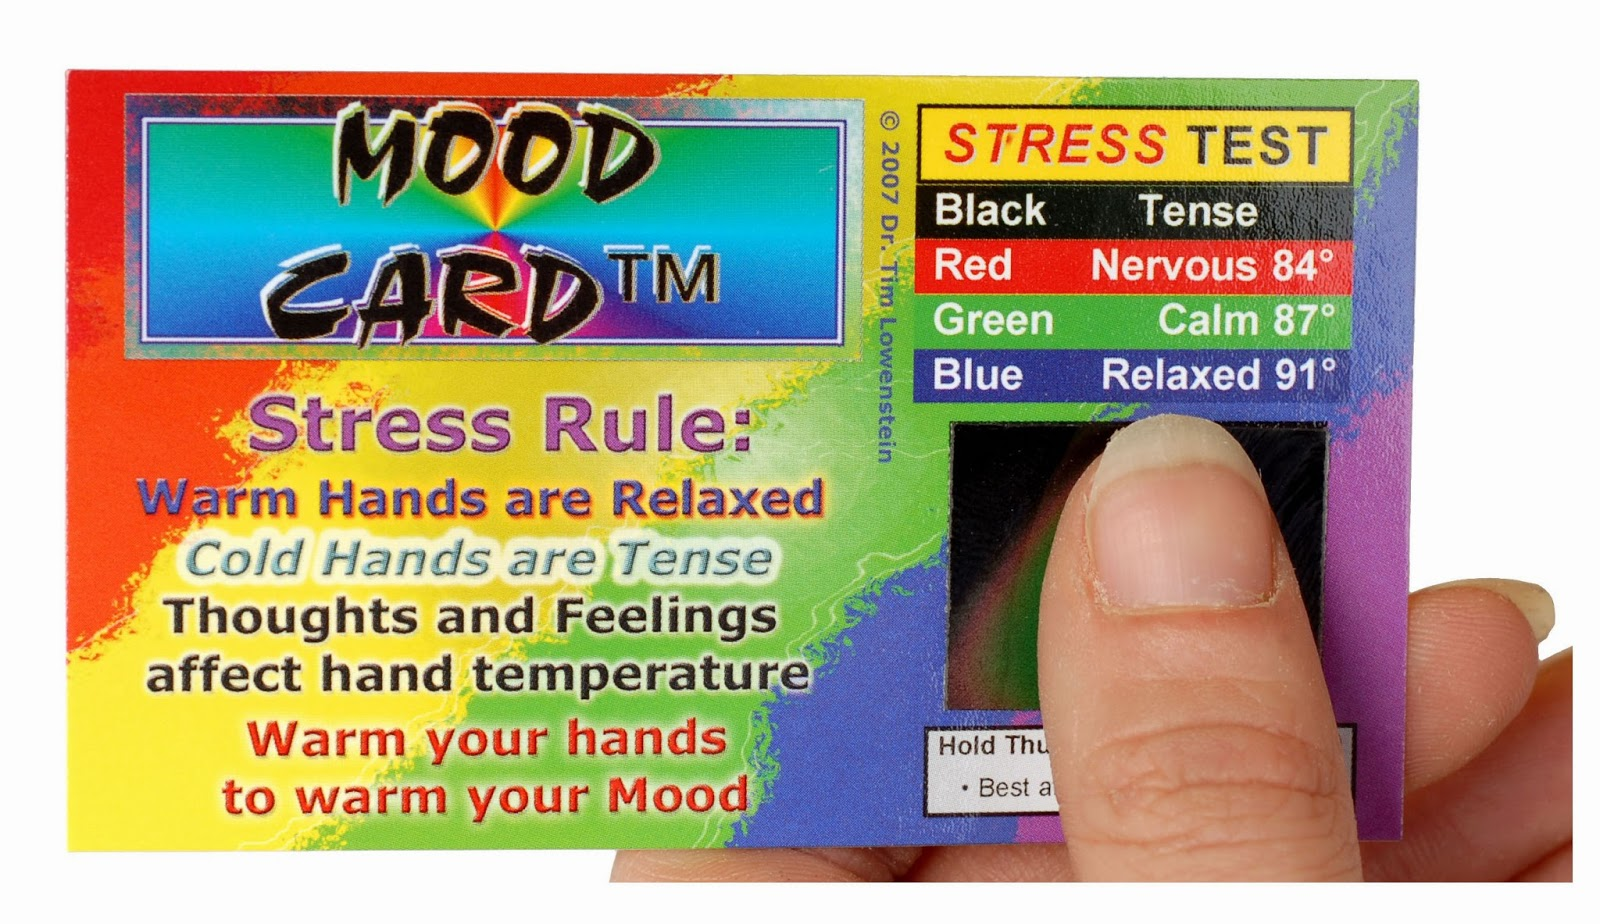 Stress anxiety biofeedback relaxation skills stress card the stress card fast stress test with color readout colourmoves